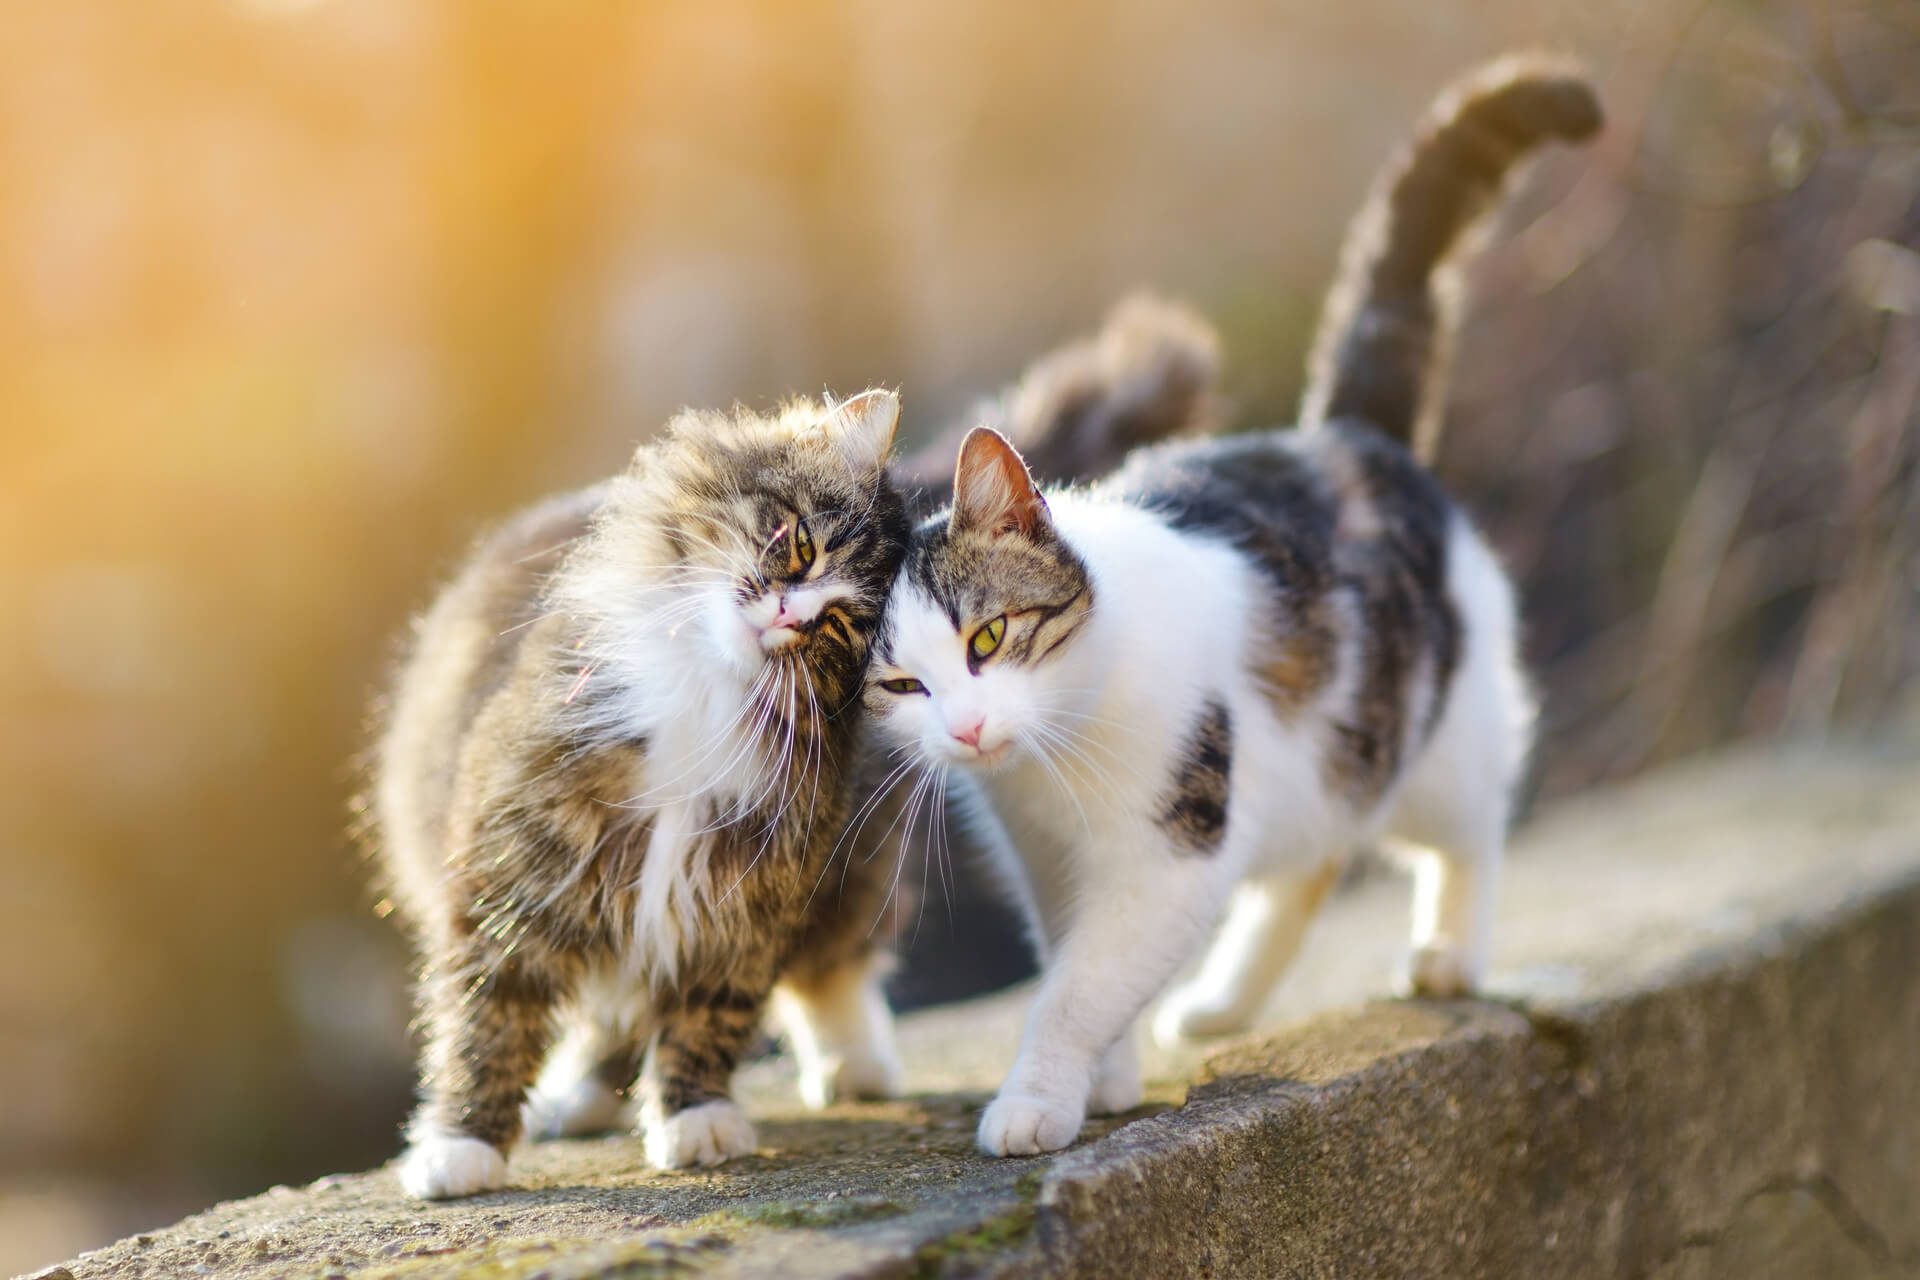 two cats nuzzling each other outside on stone wall - international cat day